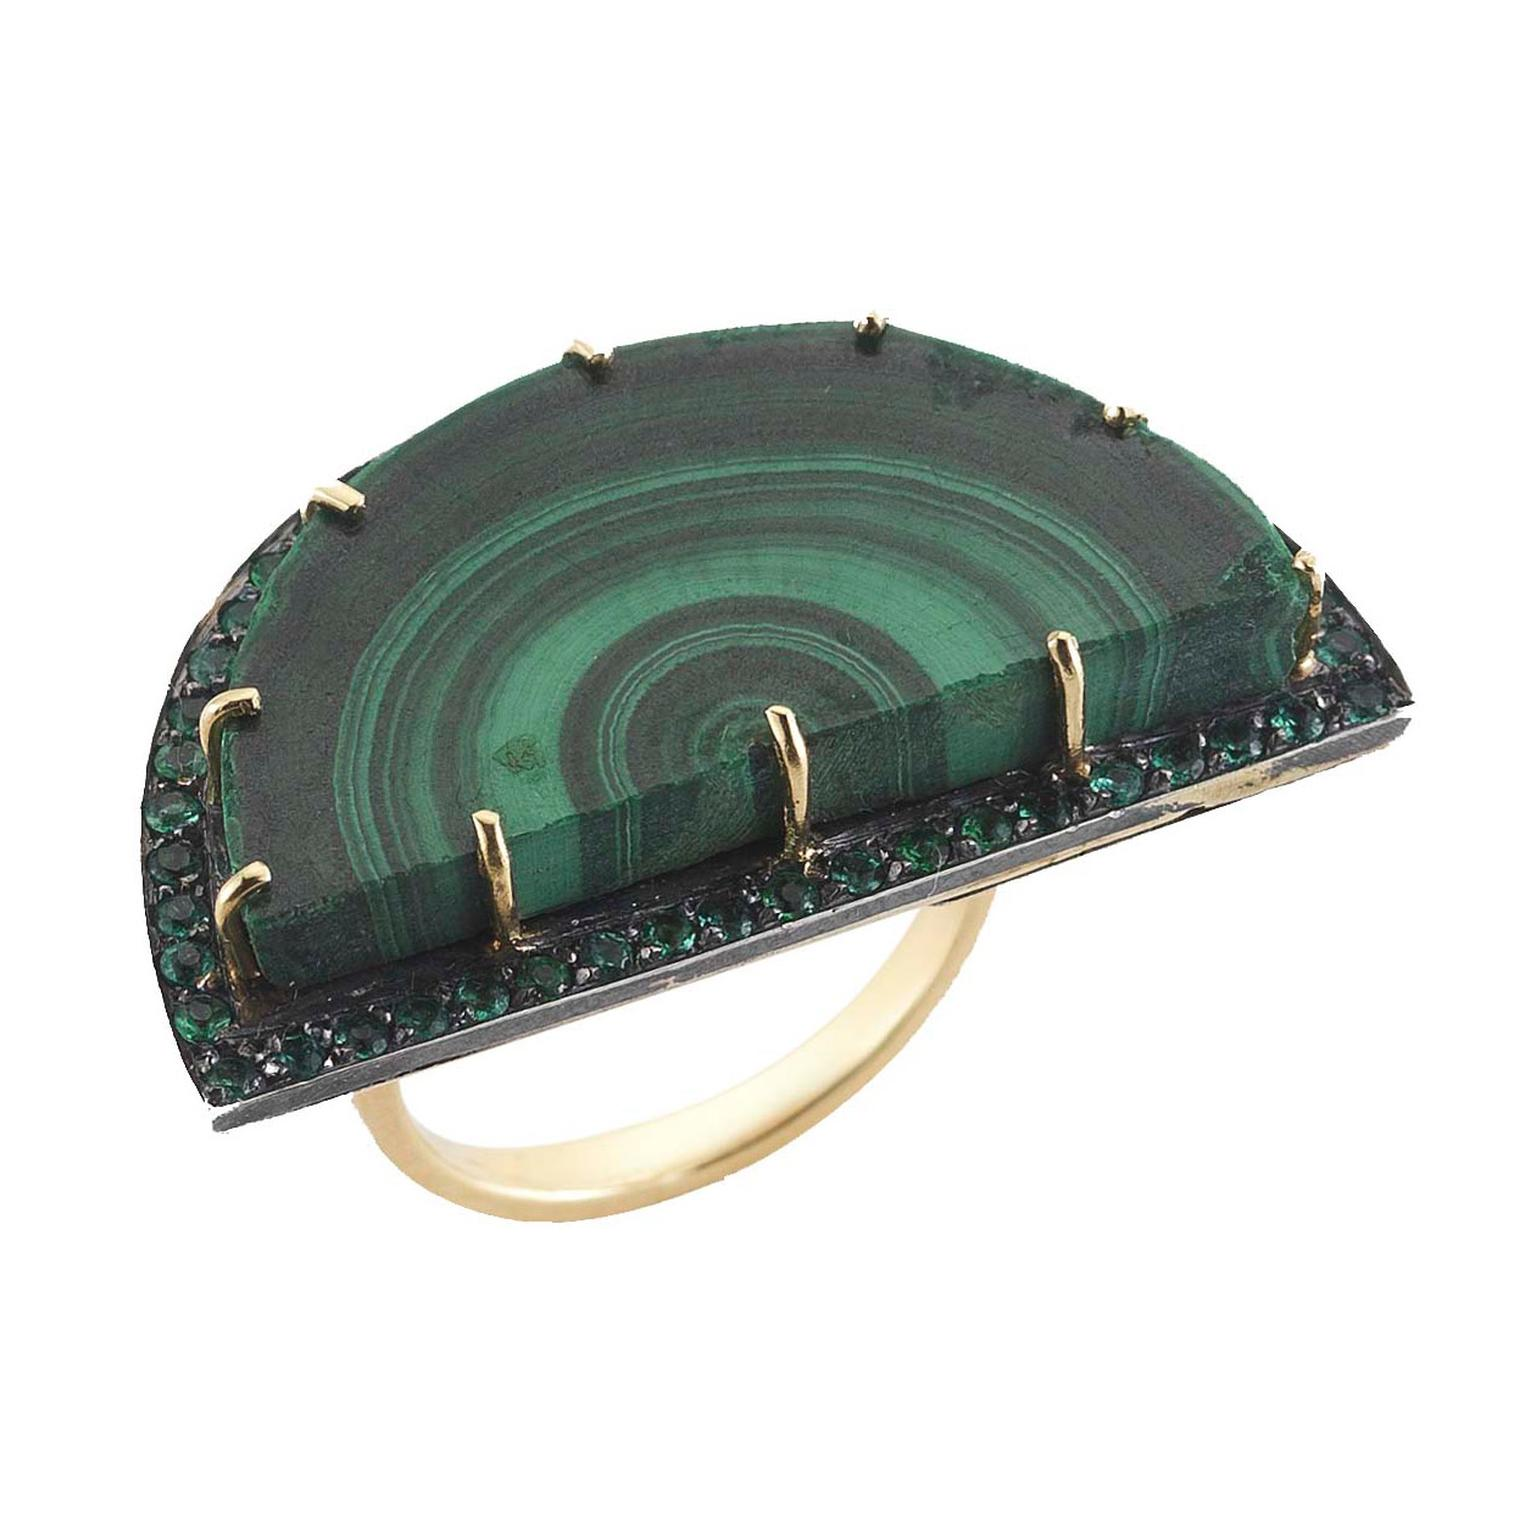 Malachite jewelry: re-enter the Seventies in style